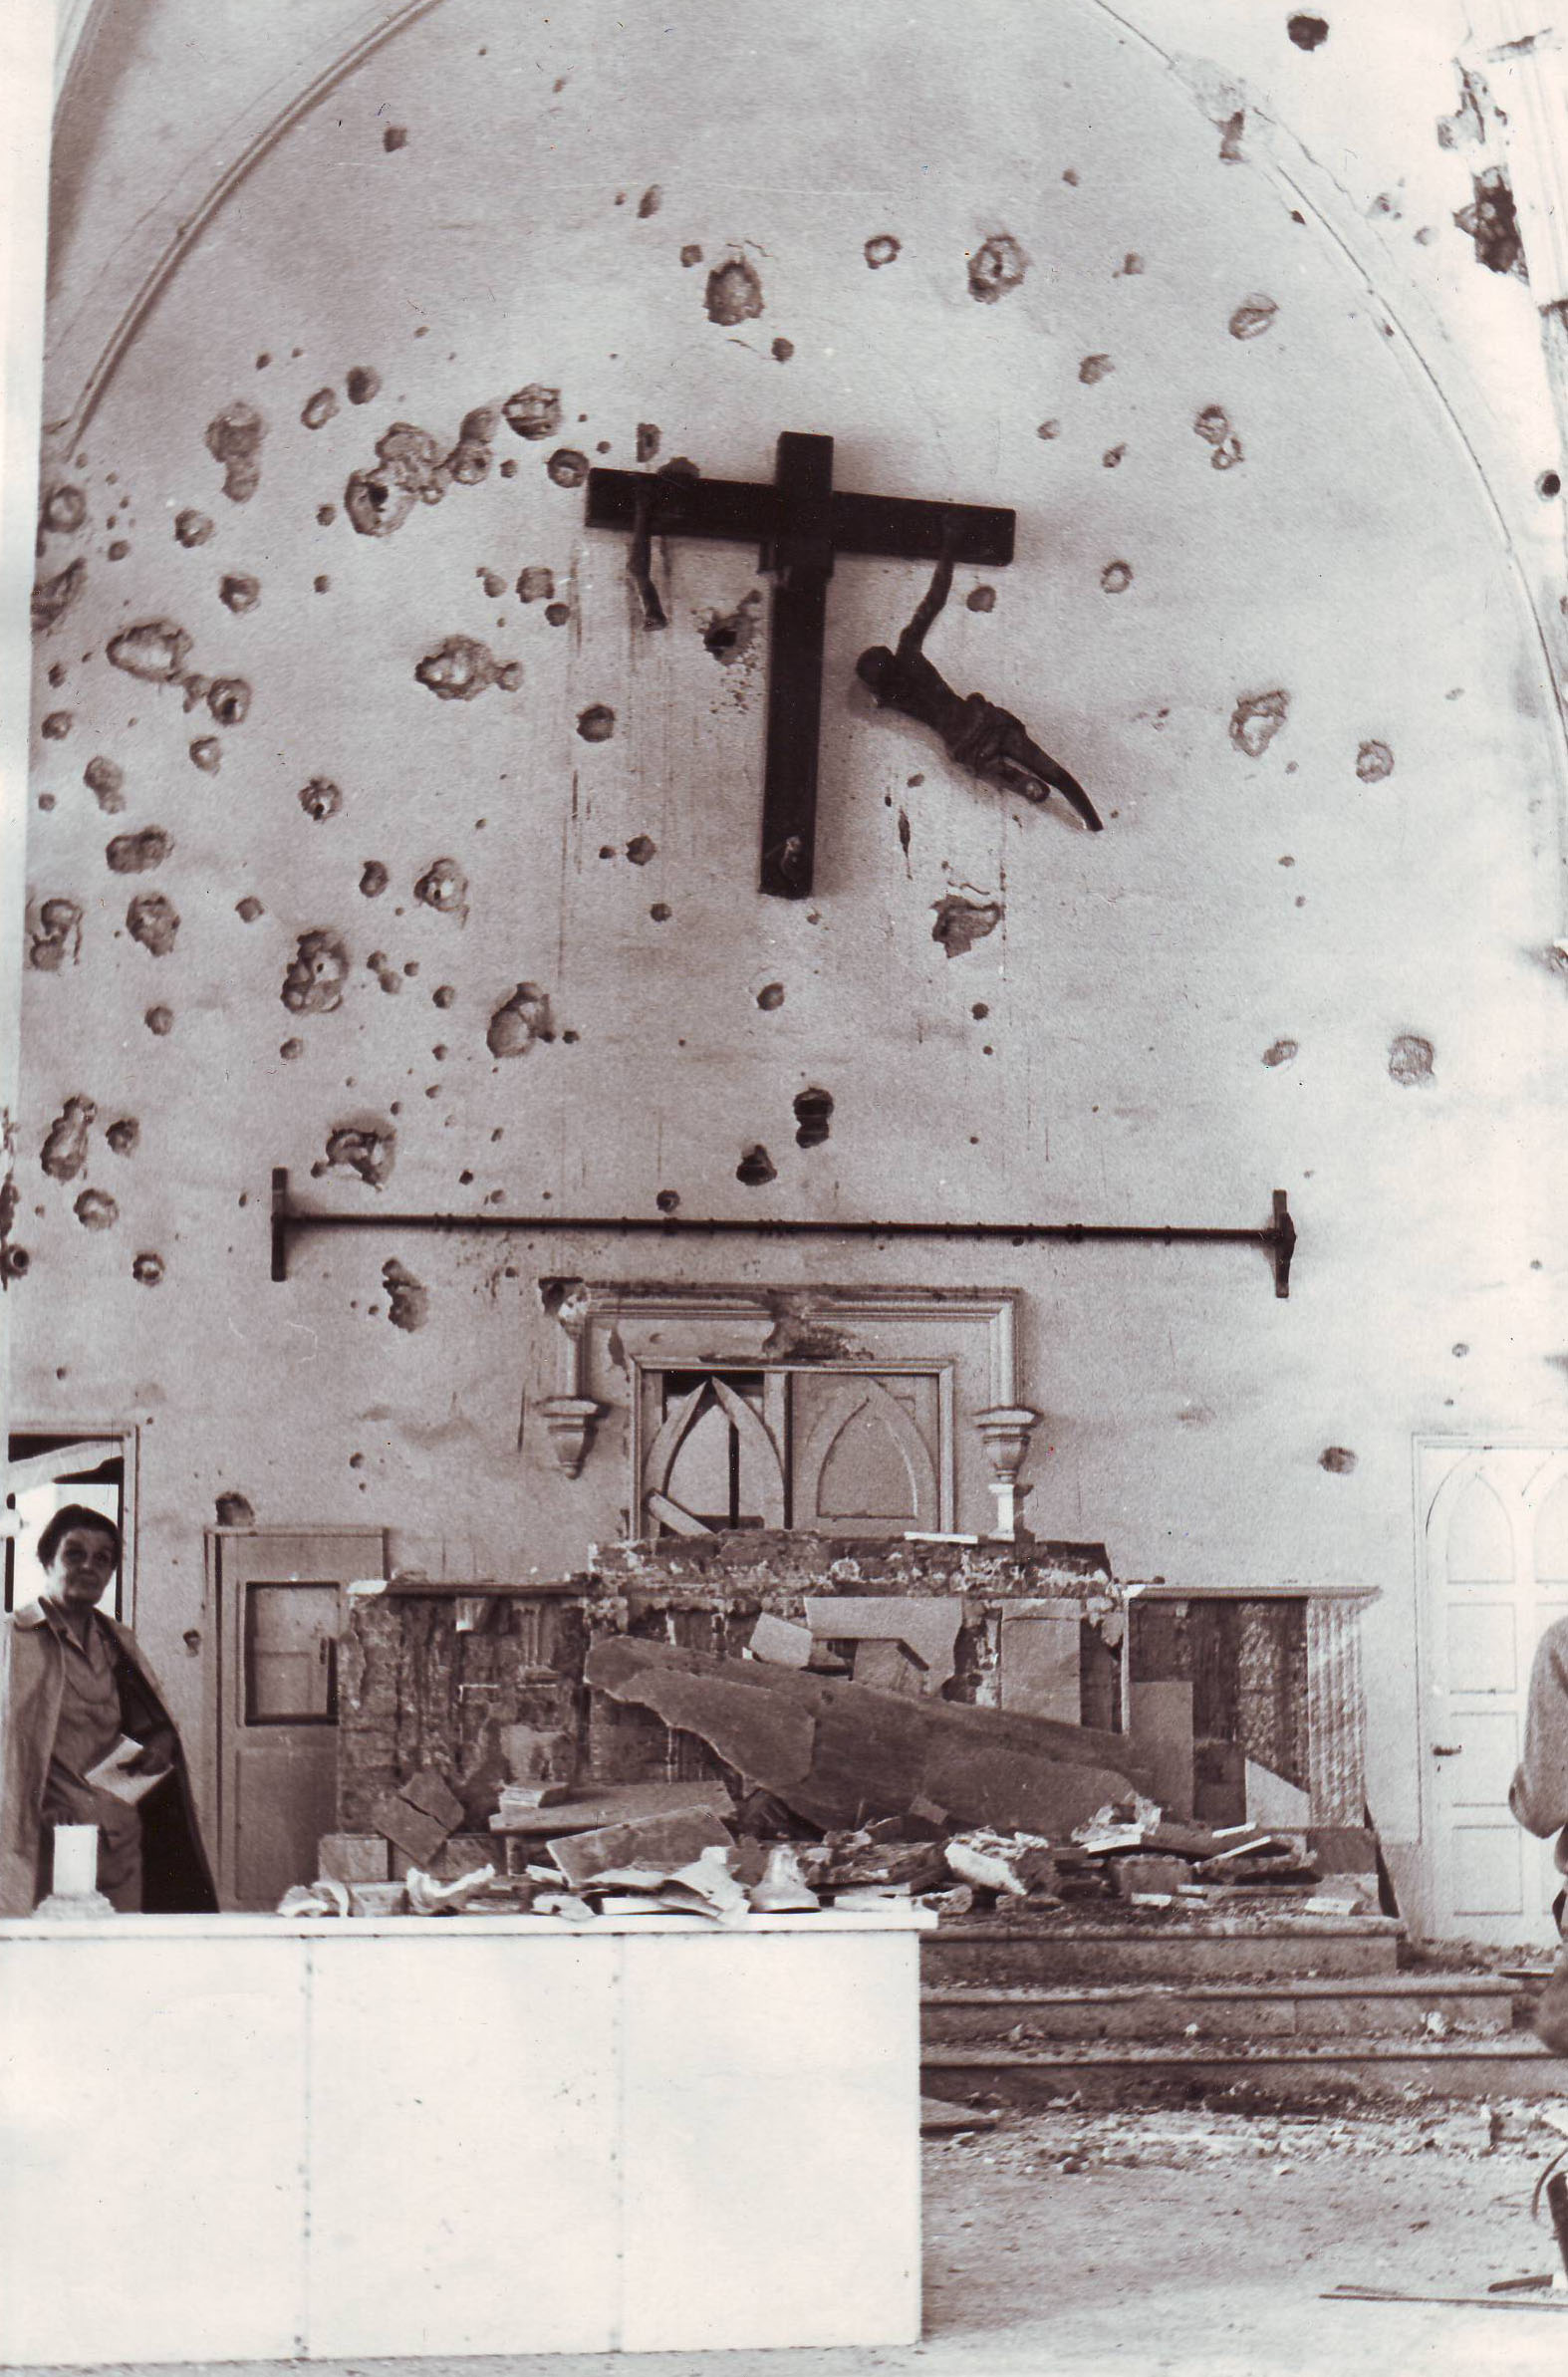 Clare Hollingworth looks into a battered church, likely during Bangladesh's war for independence in the early 1970s